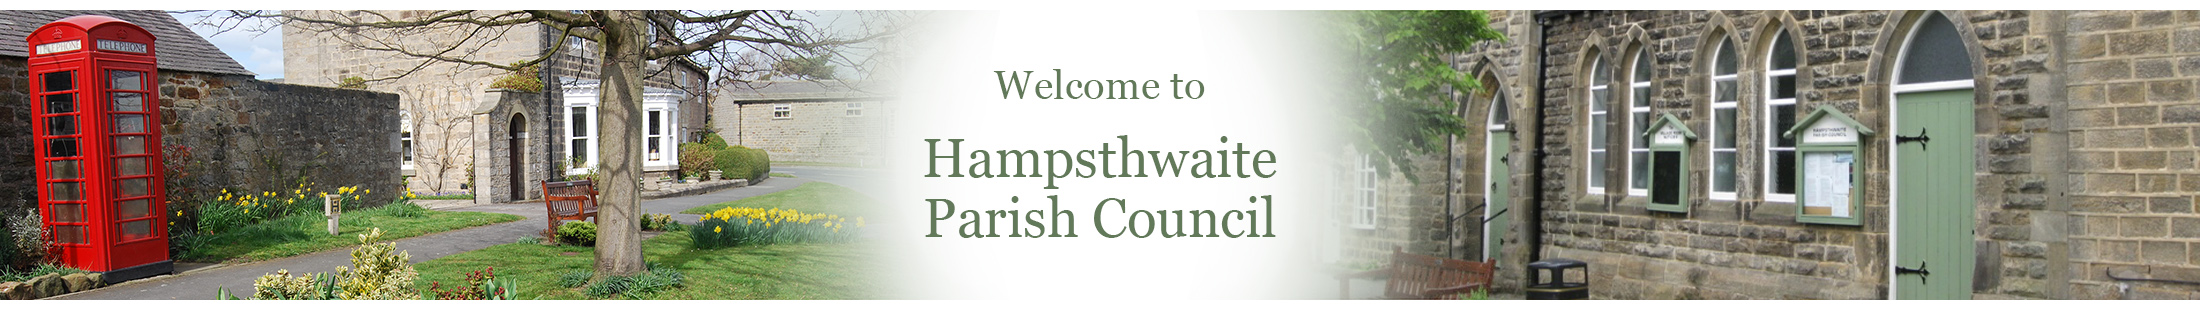 Header Image for Hampsthwaite Parish Council